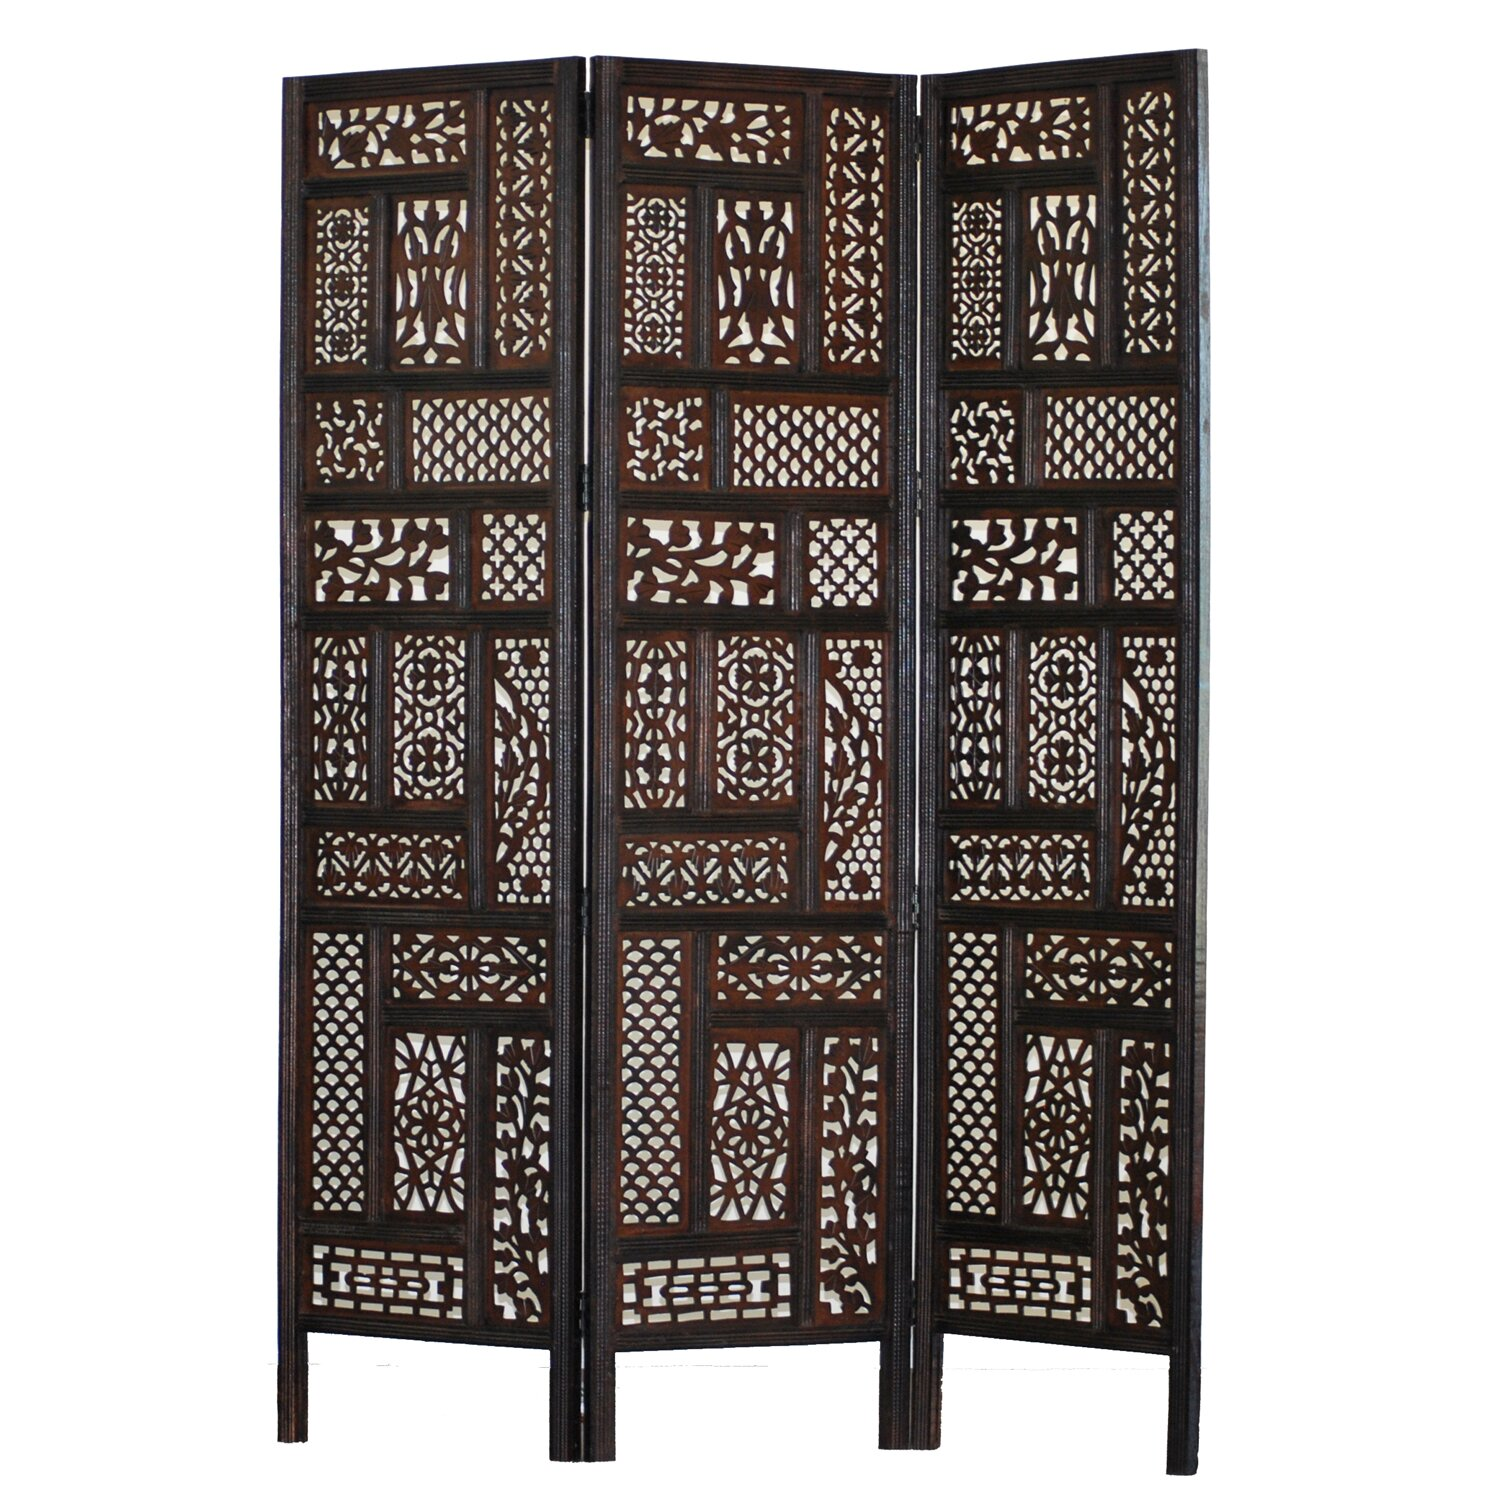 Home amp More 70quot x 54quot Hemmingway 3 Panel Room Divider  : Home and More 54 x 70 Hemmingway 3 Panel Room Divider 14013 from www.wayfair.com size 1500 x 1500 jpeg 550kB